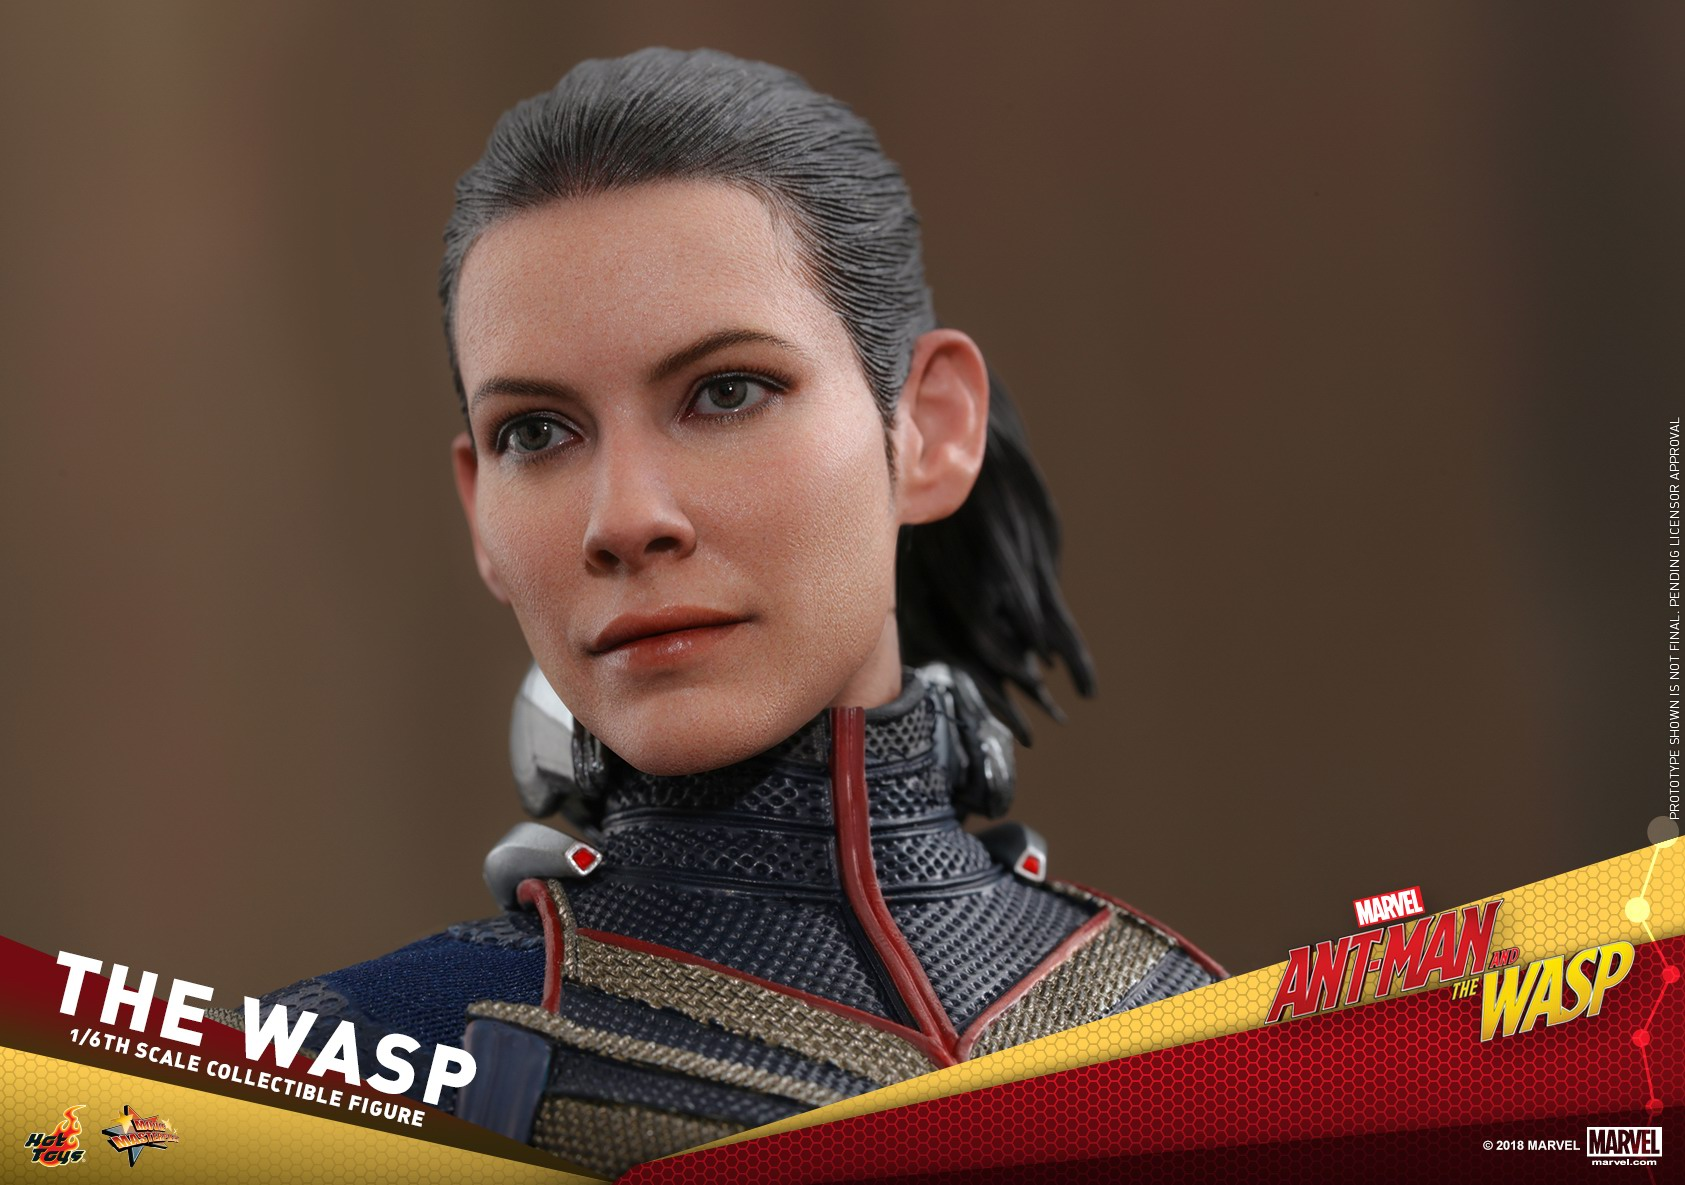 Hot-Toys-Ant-Man-and-The-Wasp-The-Wasp-Collectible-Figure_PR4.jpg